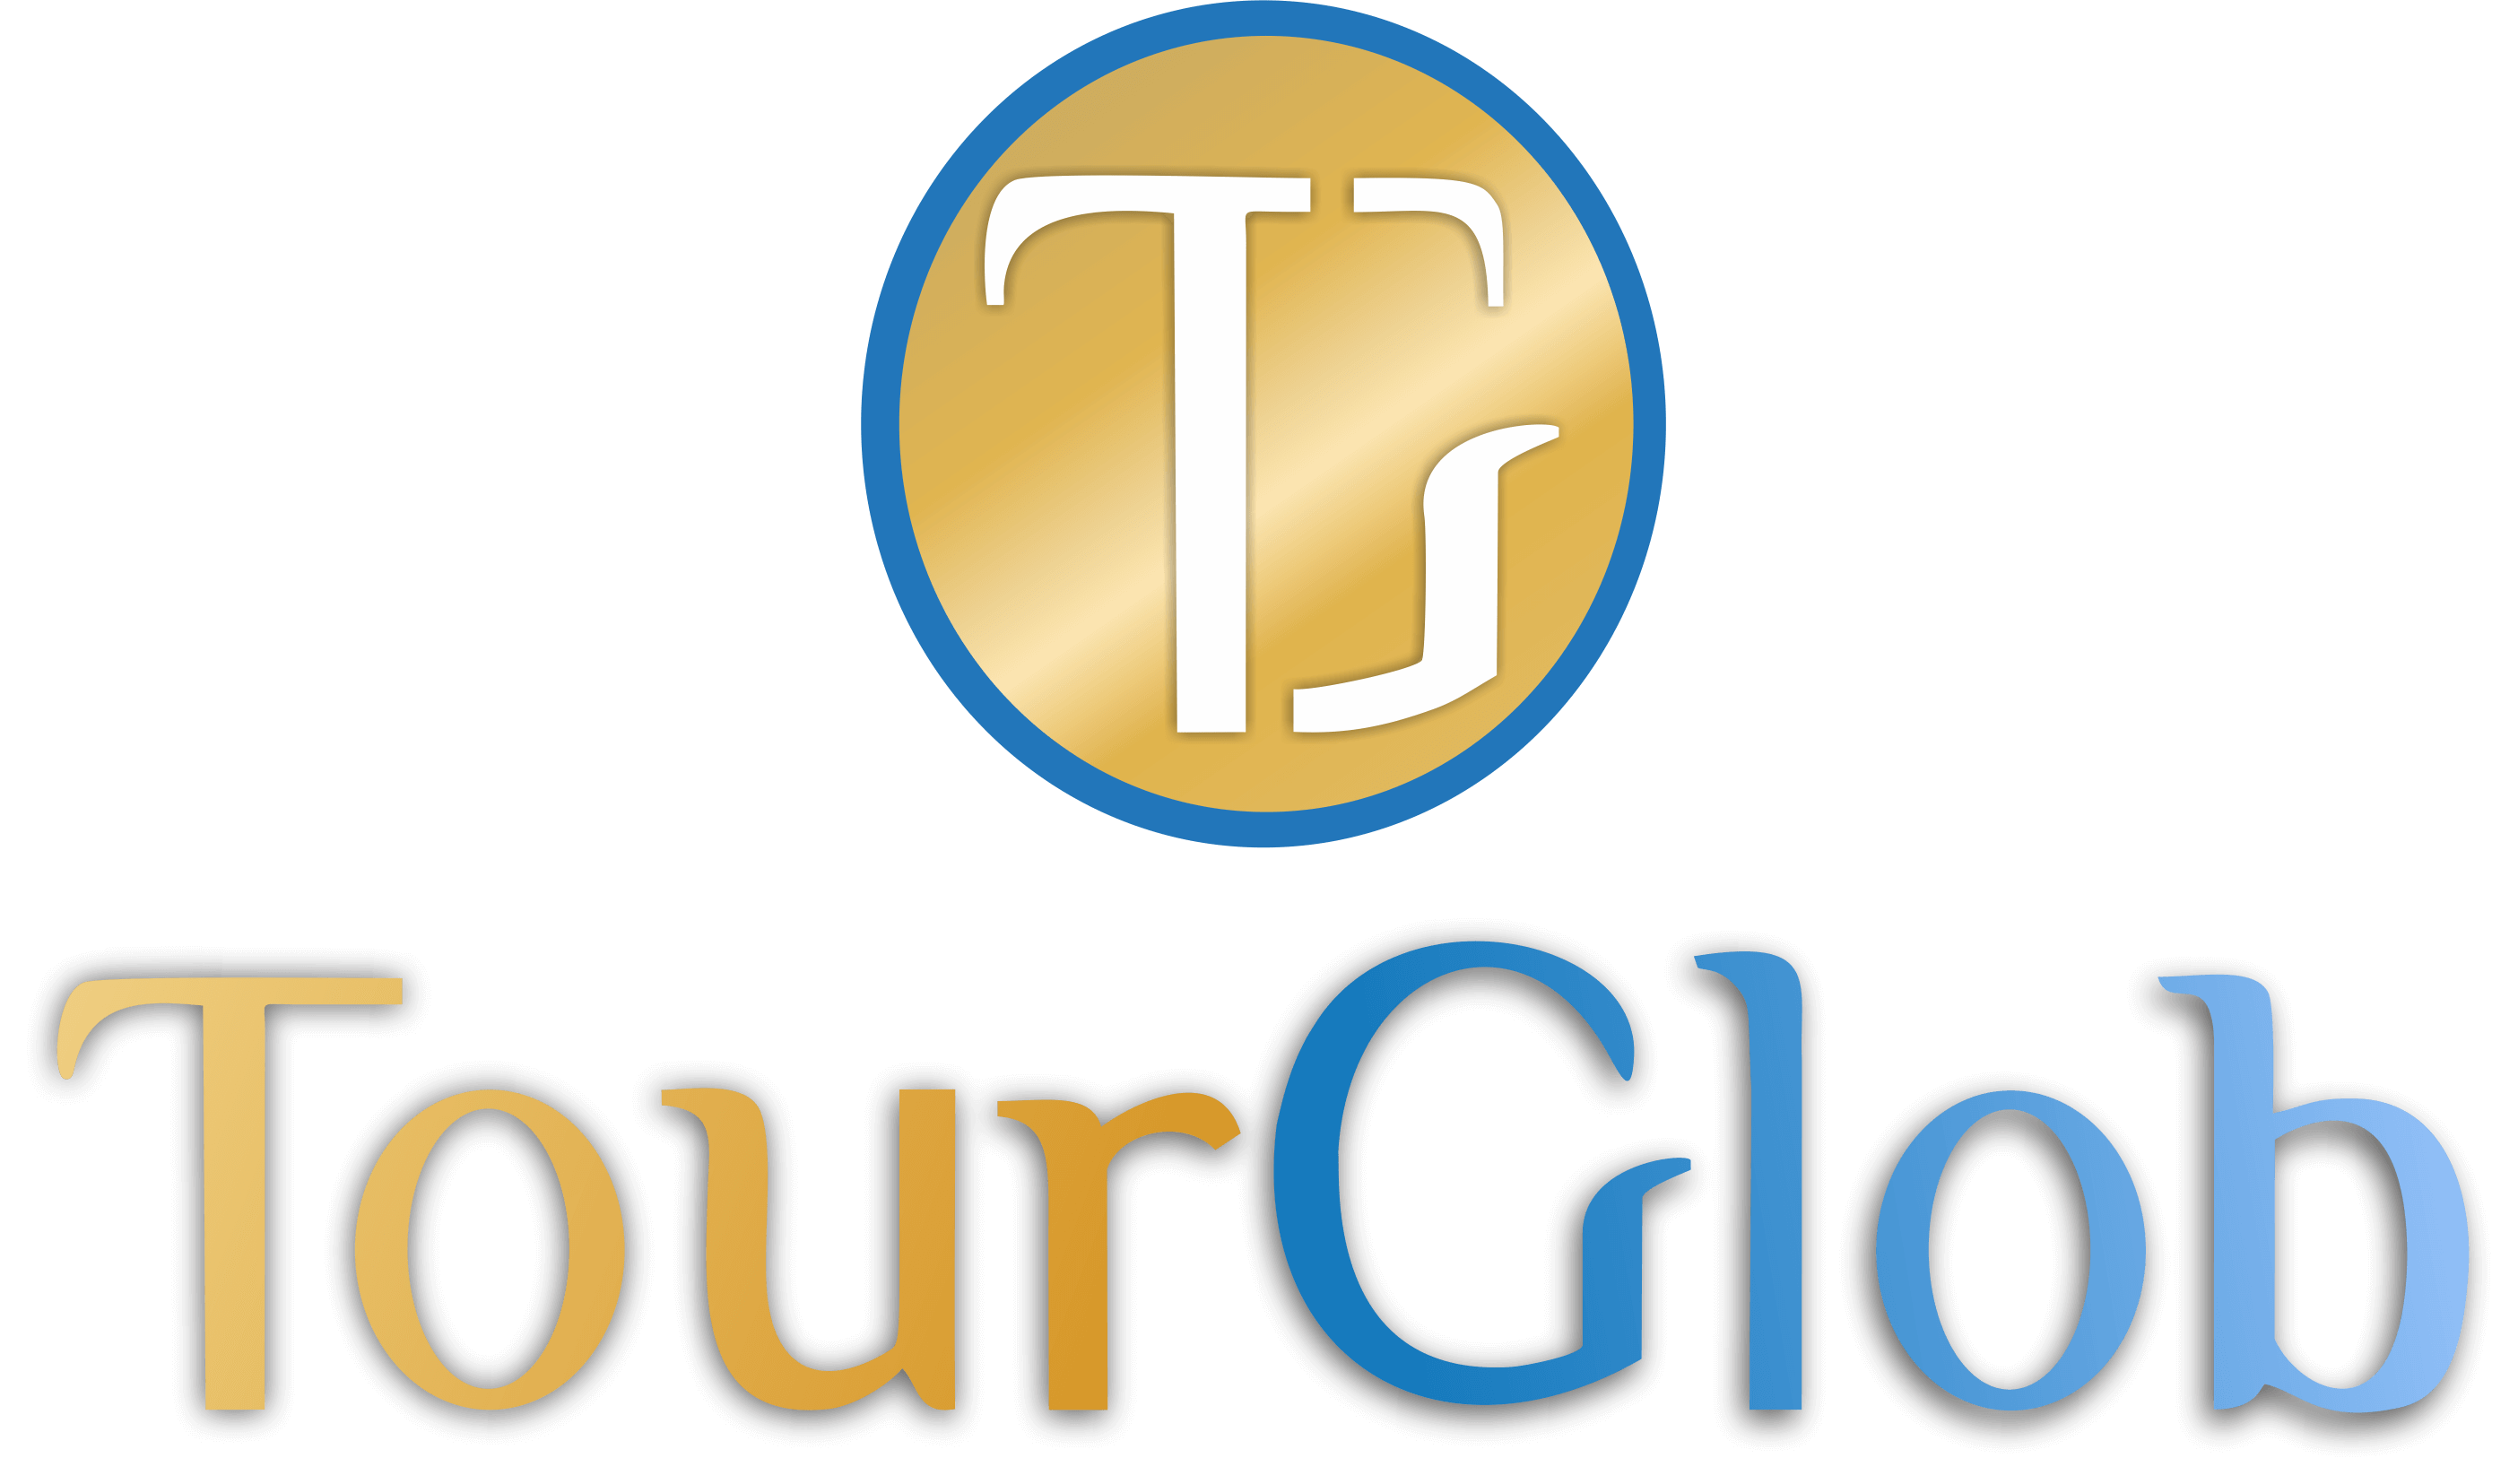 Logo of Tourglob tour agency